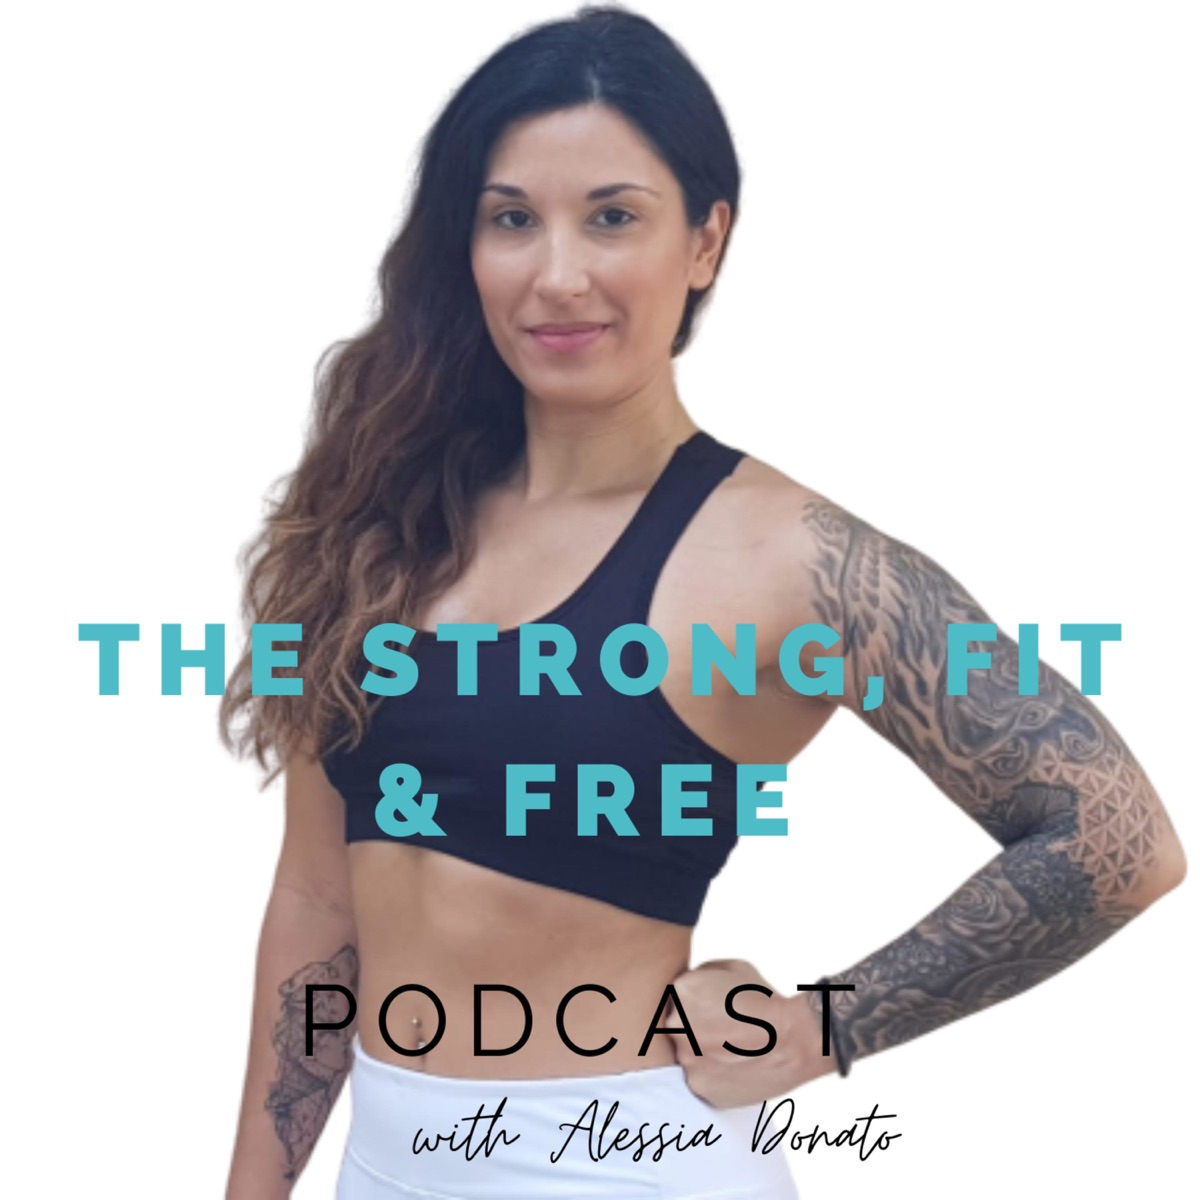 The Strong, Fit & Free Podcast